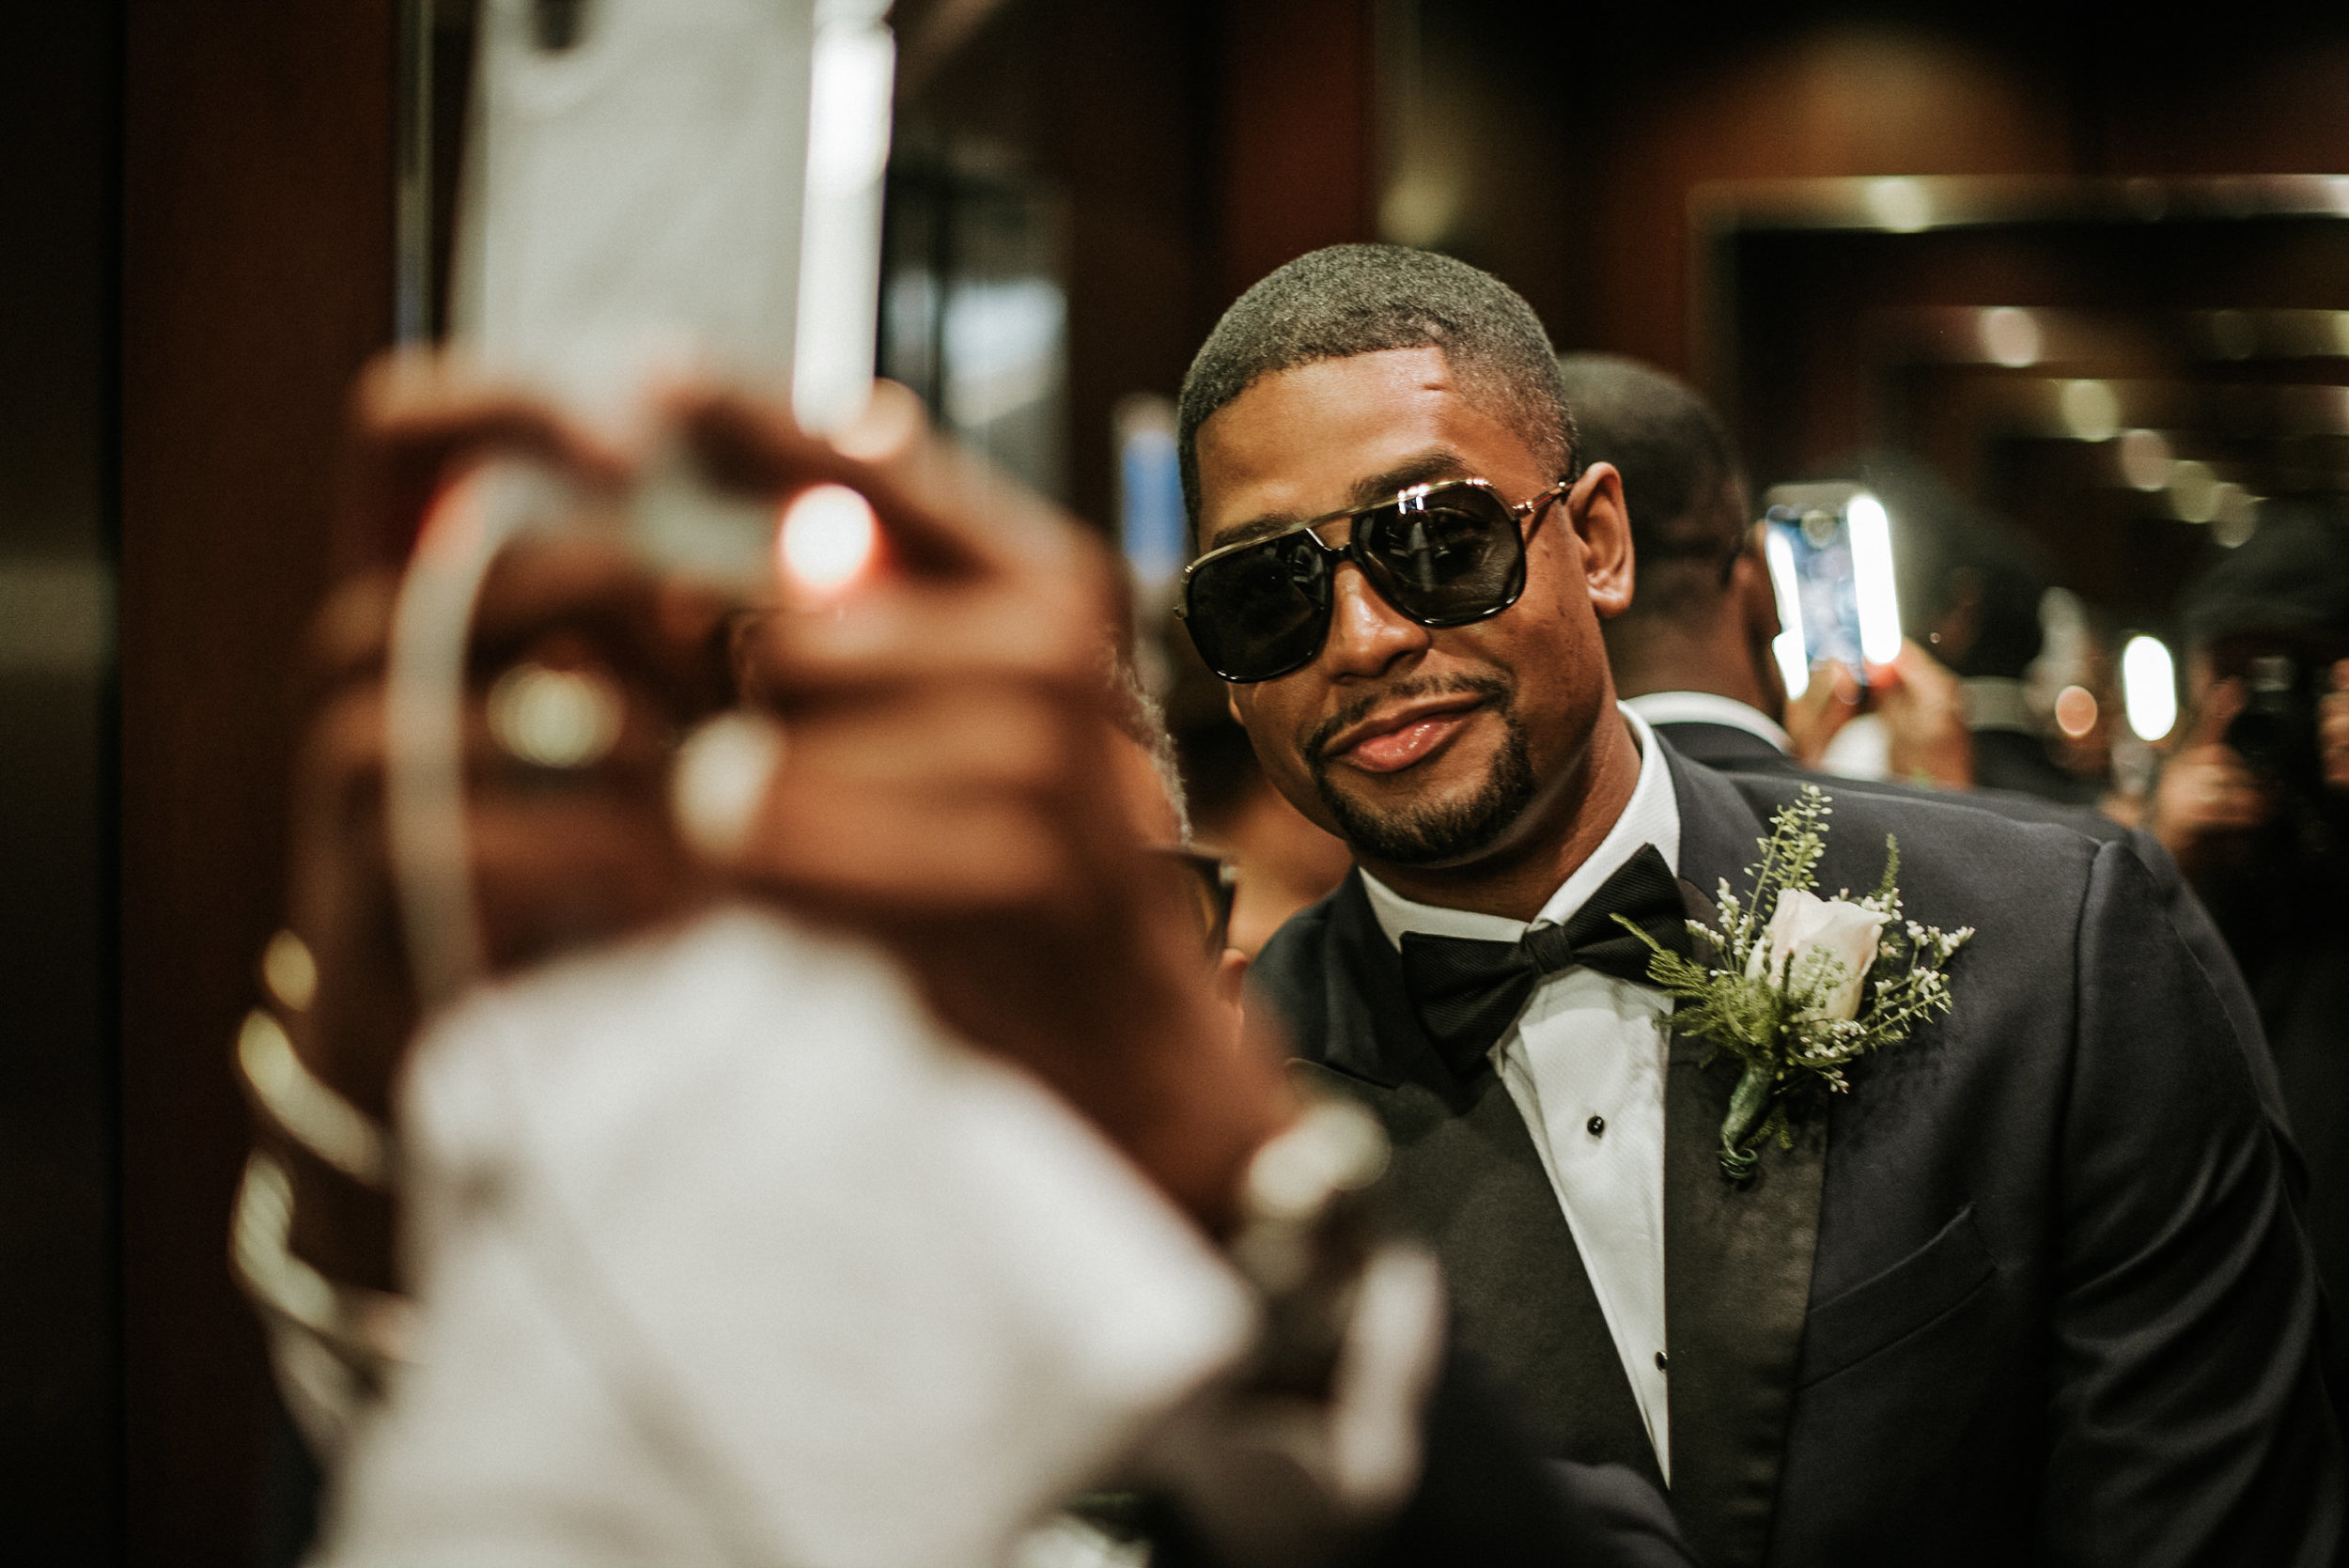 Groom taking selfie before wedding